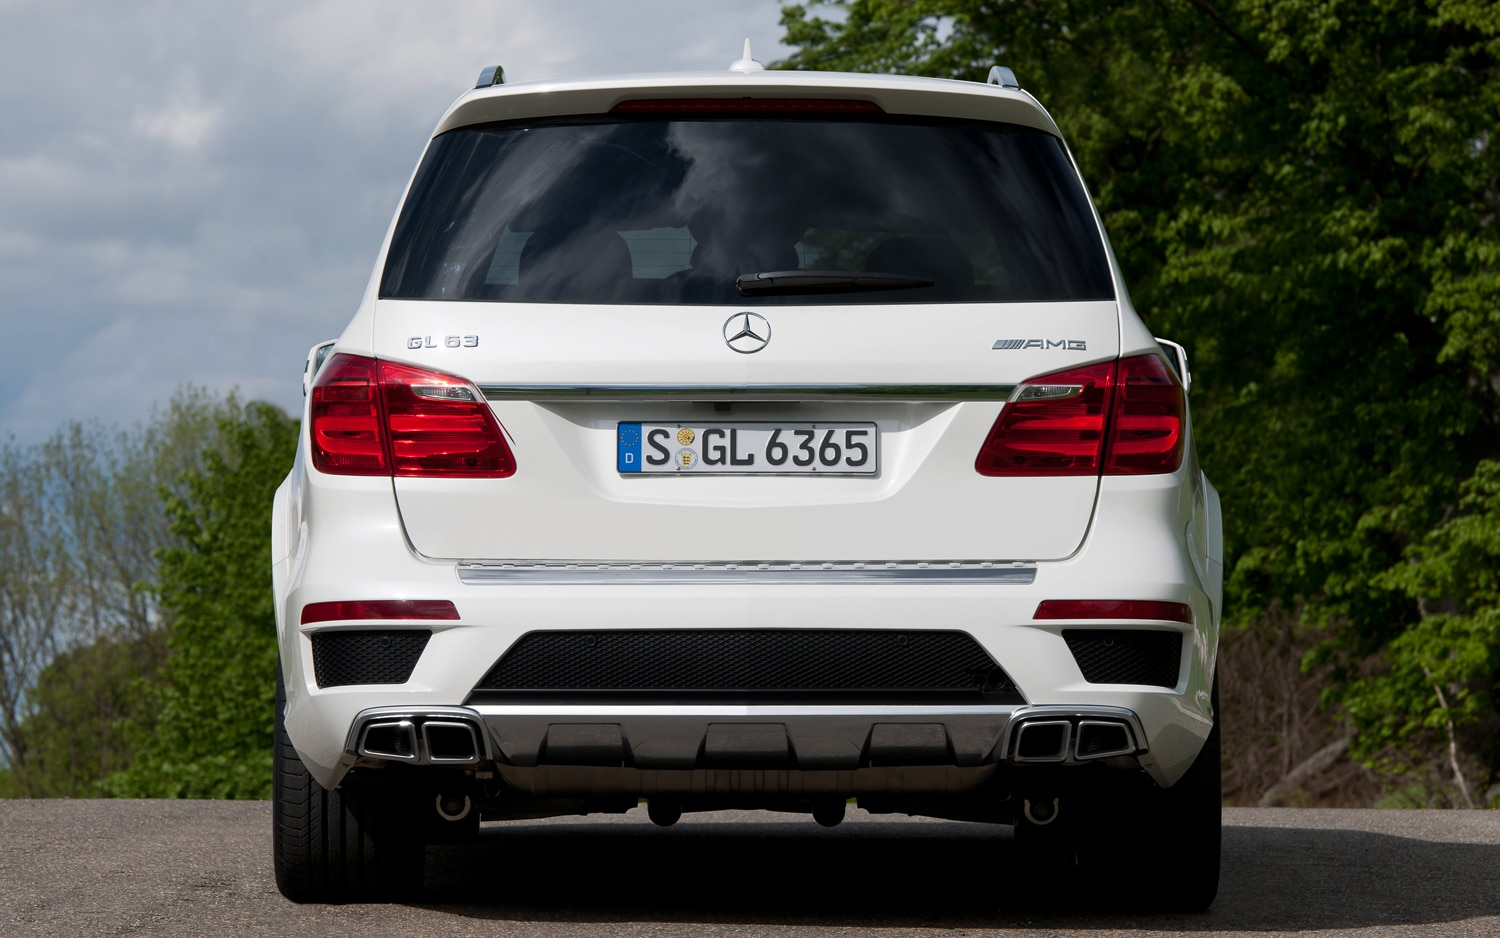 2013 Mercedes Benz GL63 AMG Rear1